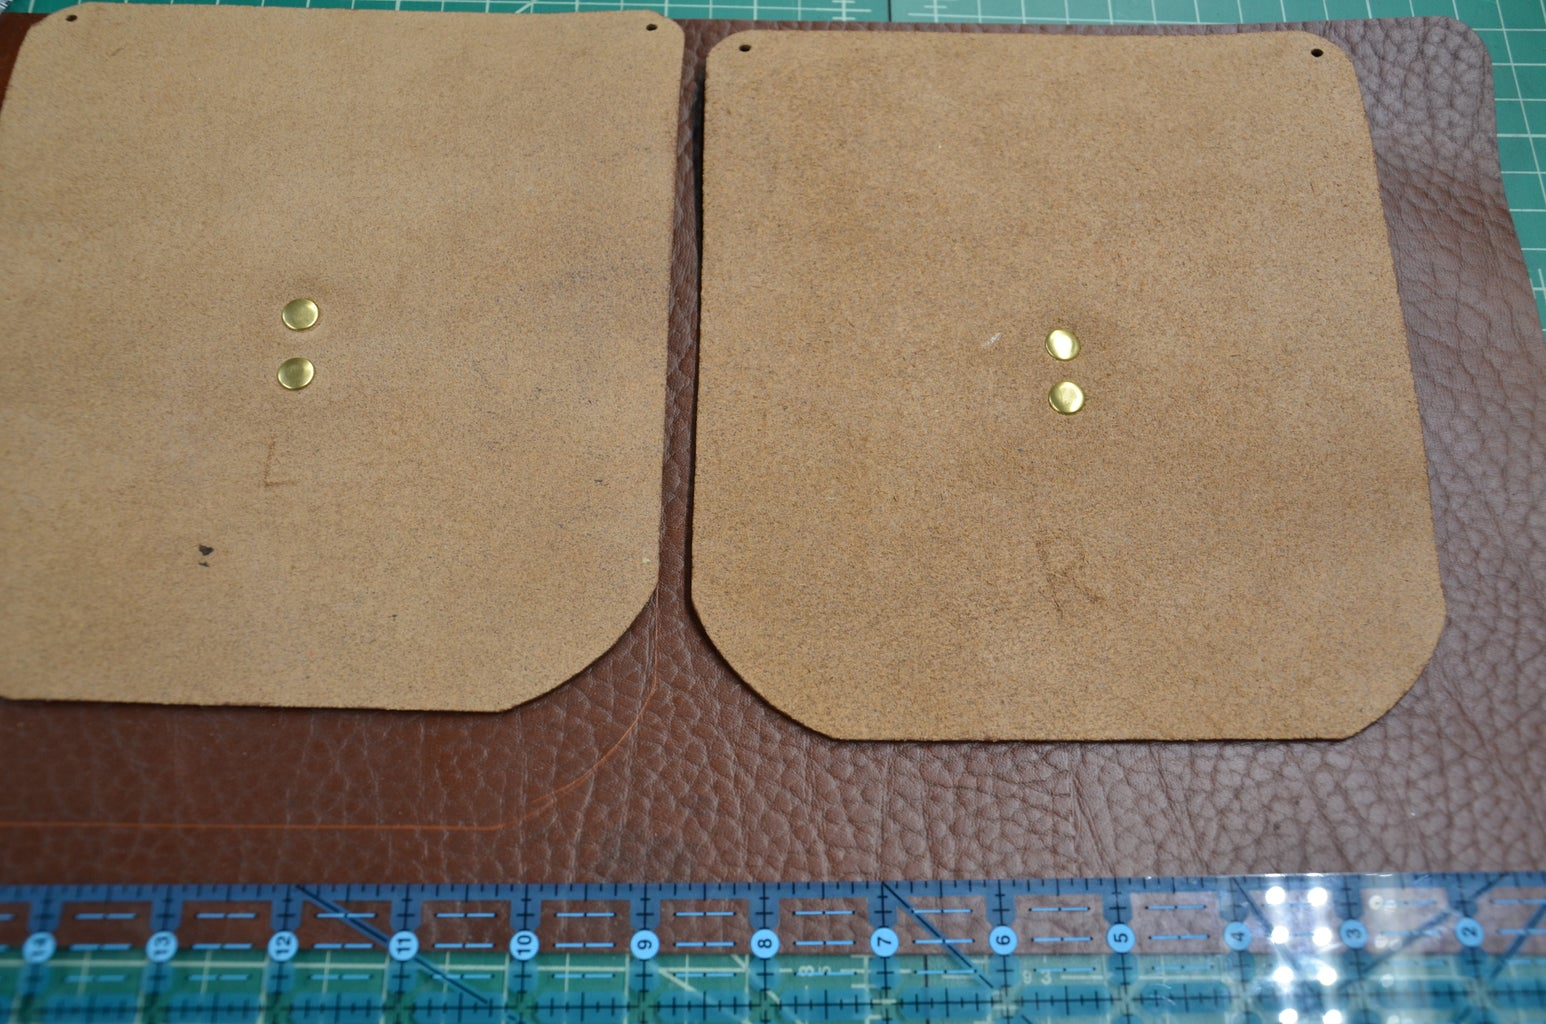 Step 6: Attaching Front Pockets to Laptop Pocket